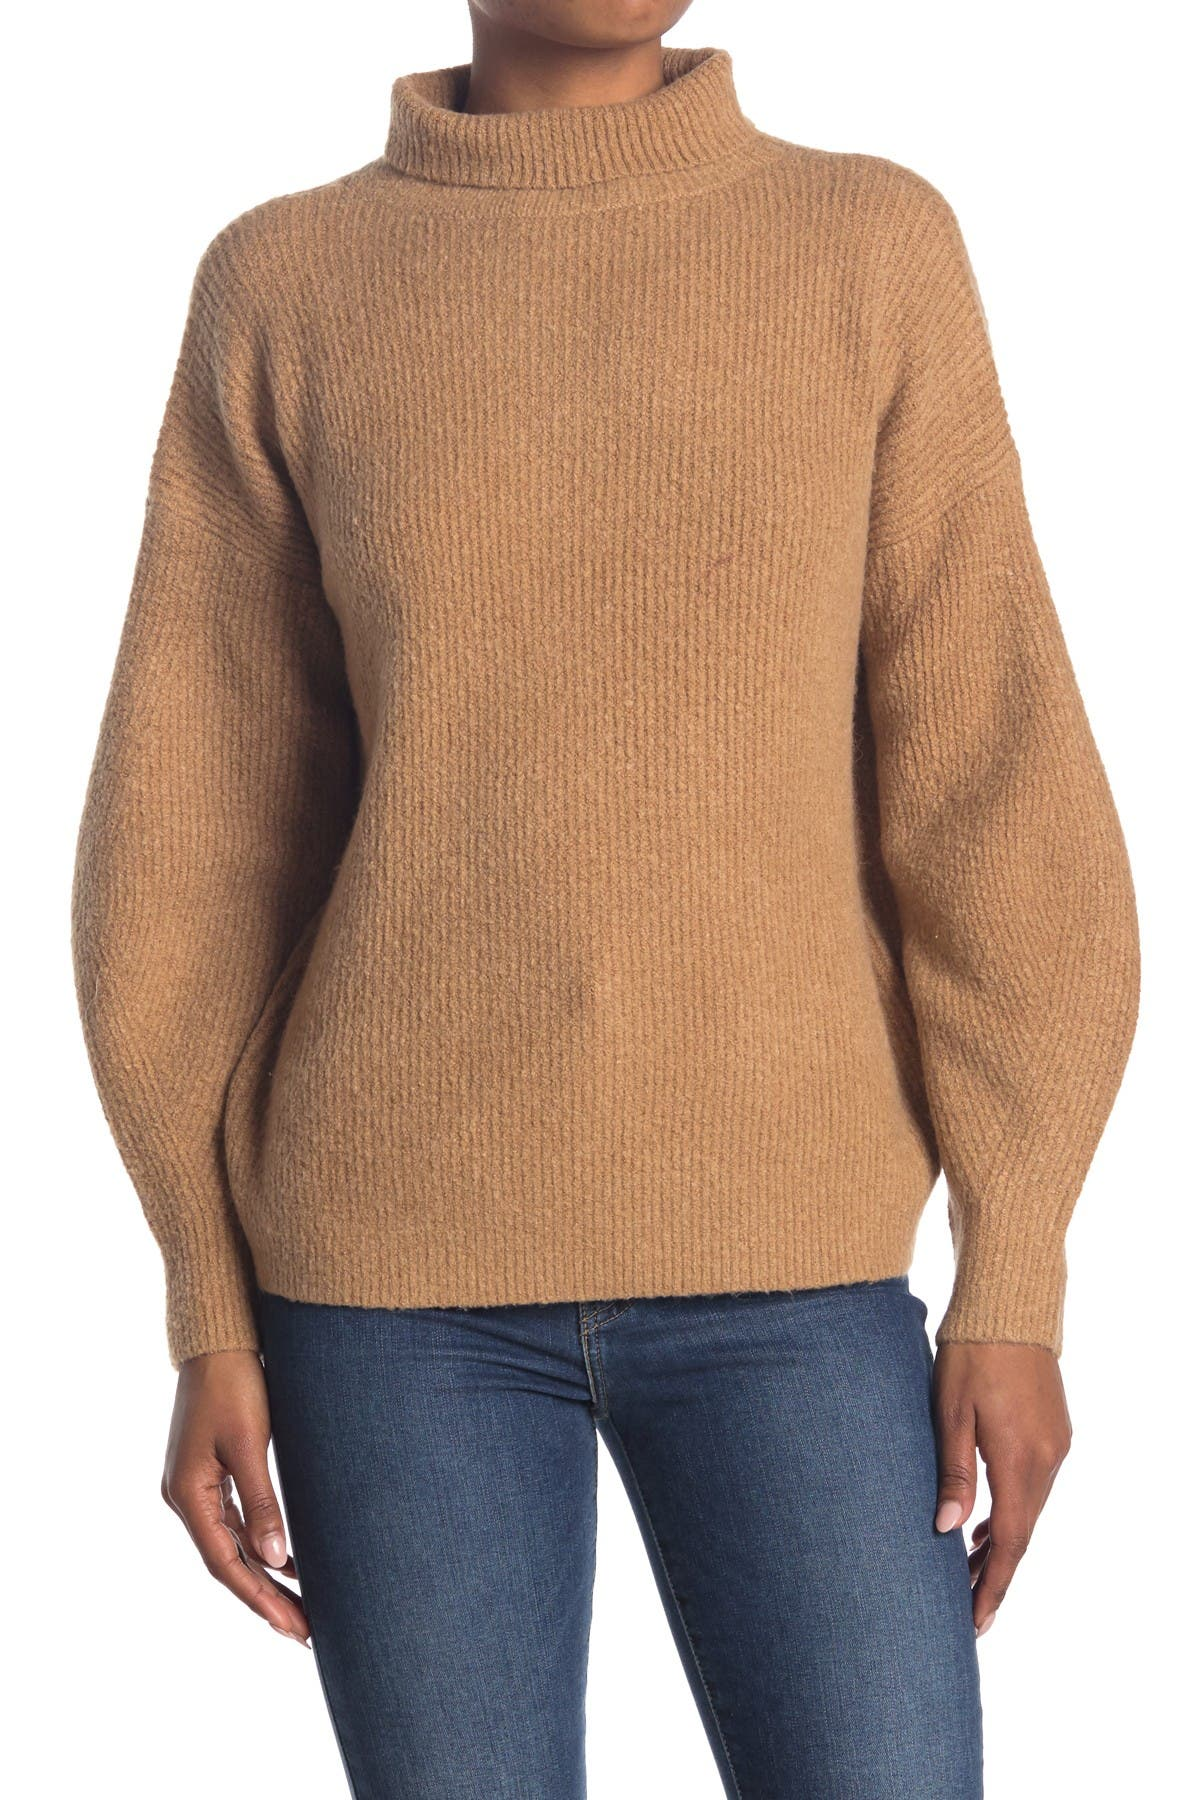 Image of French Connection Flossy Ribbed Turtleneck Sweater